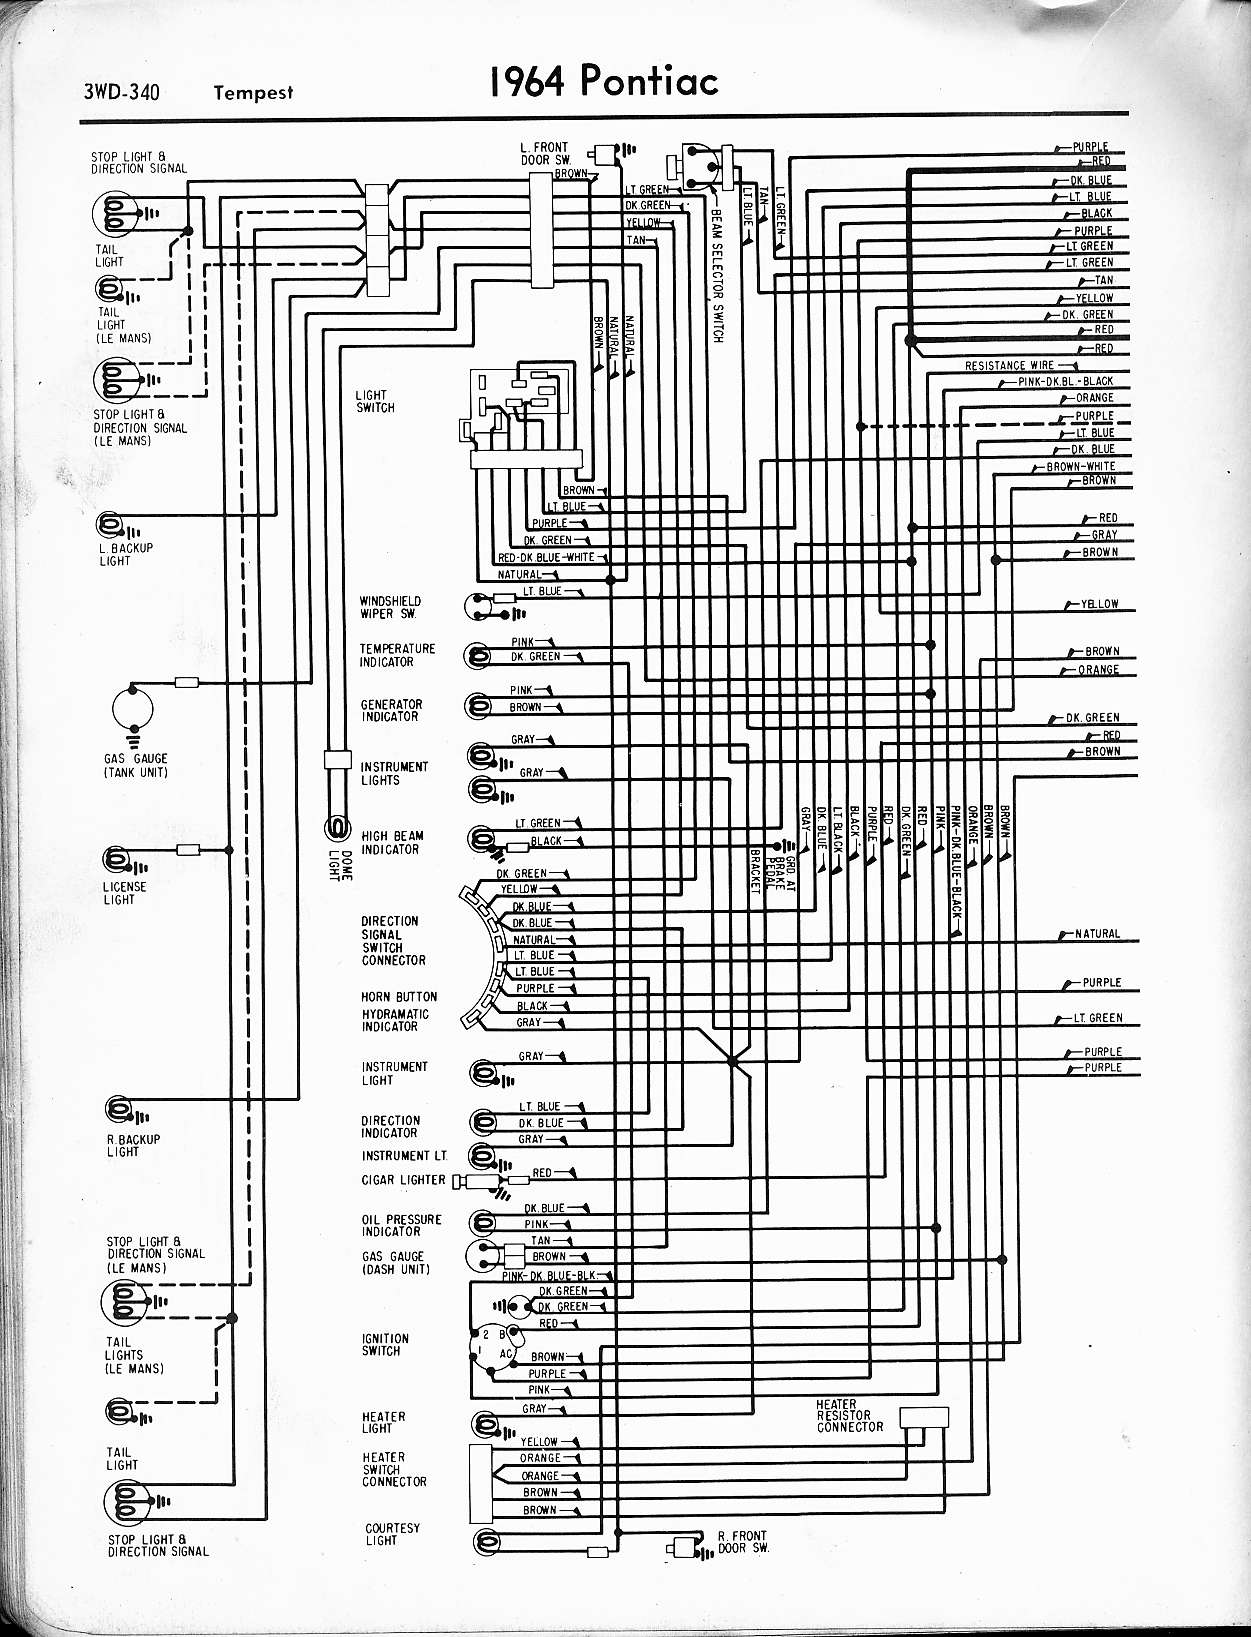 65 pontiac gto wiring diagrams wiring harness wiring diagram additionally 1968 pontiac gto dash wiring diagram on 1967 gto dash wiring diagram 65 pontiac gto wiring diagrams ccuart Image collections